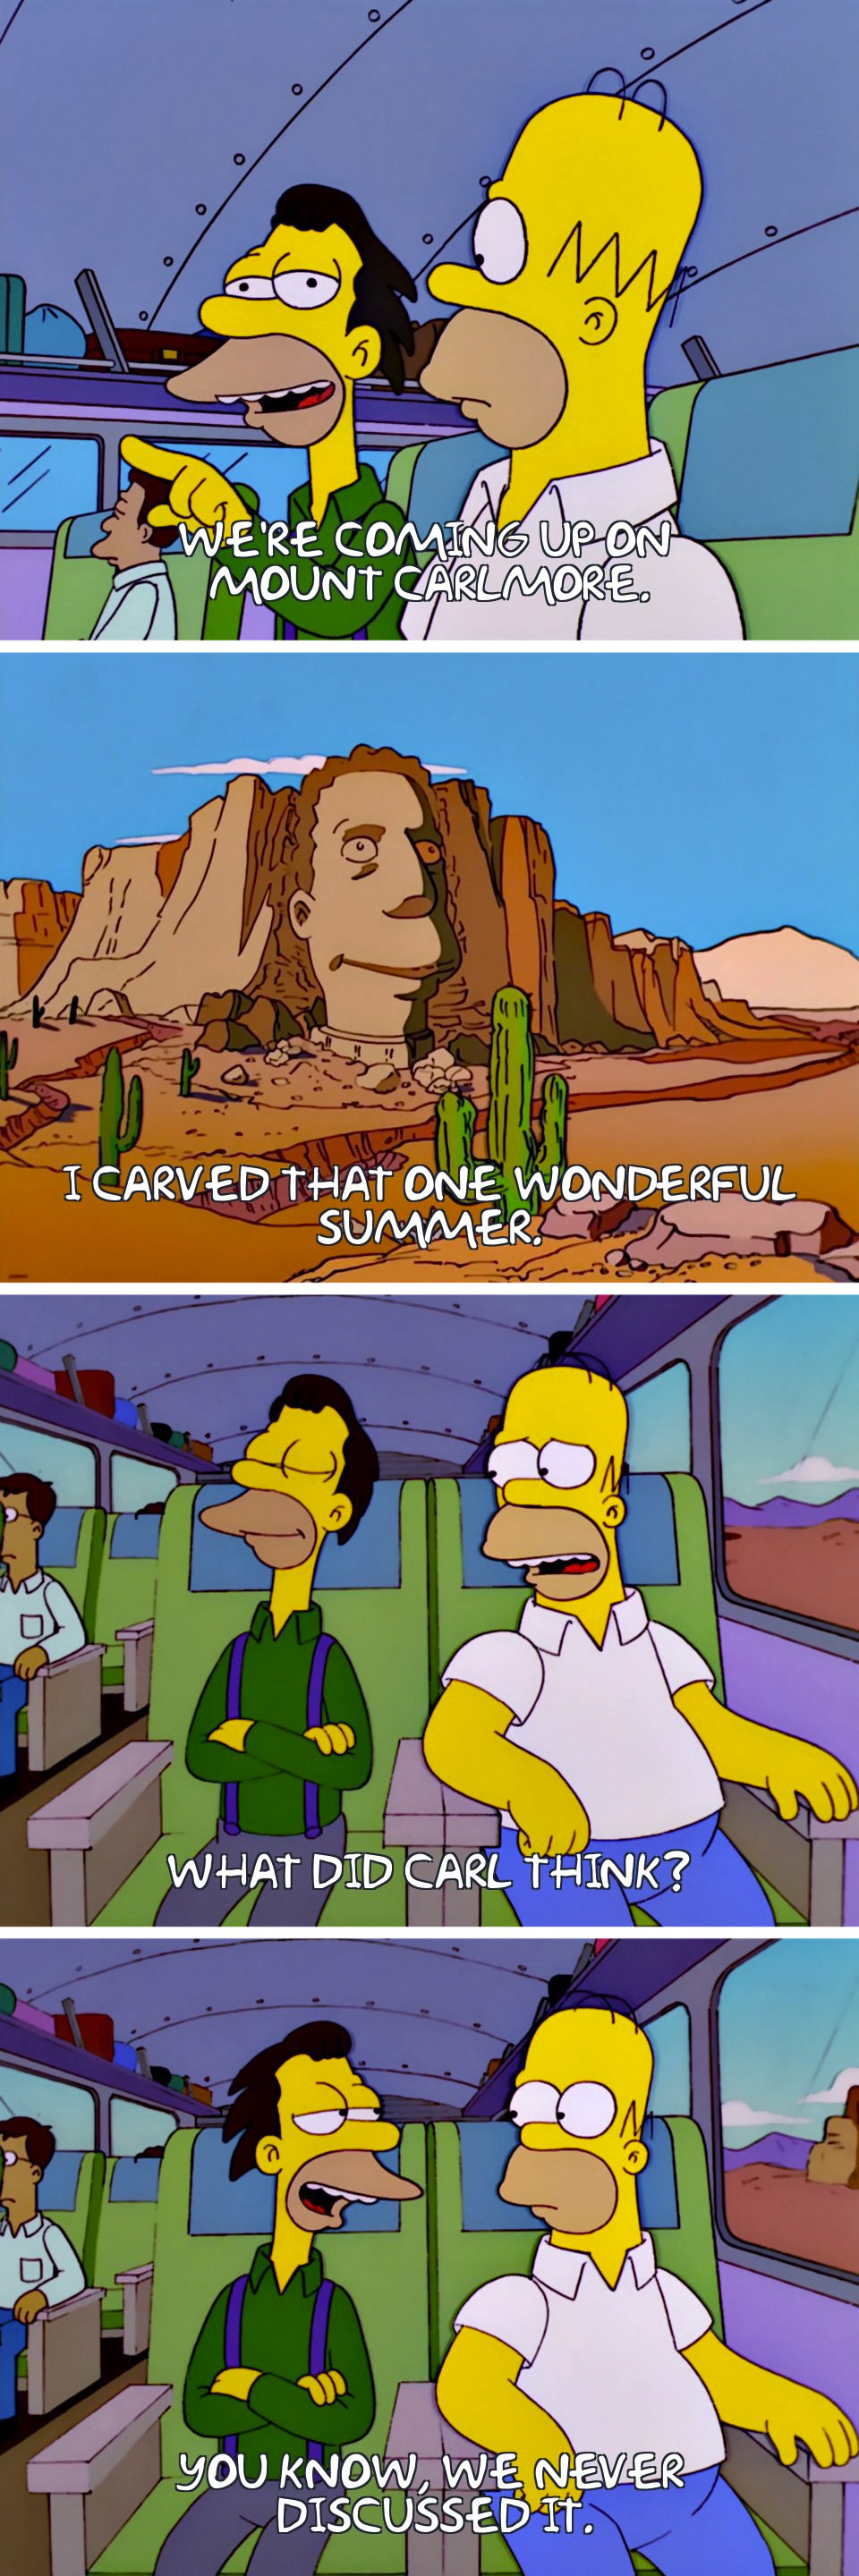 """23 Brilliant And Underrated """"Simpsons"""" Jokes That'll Make You Laugh Every Time"""